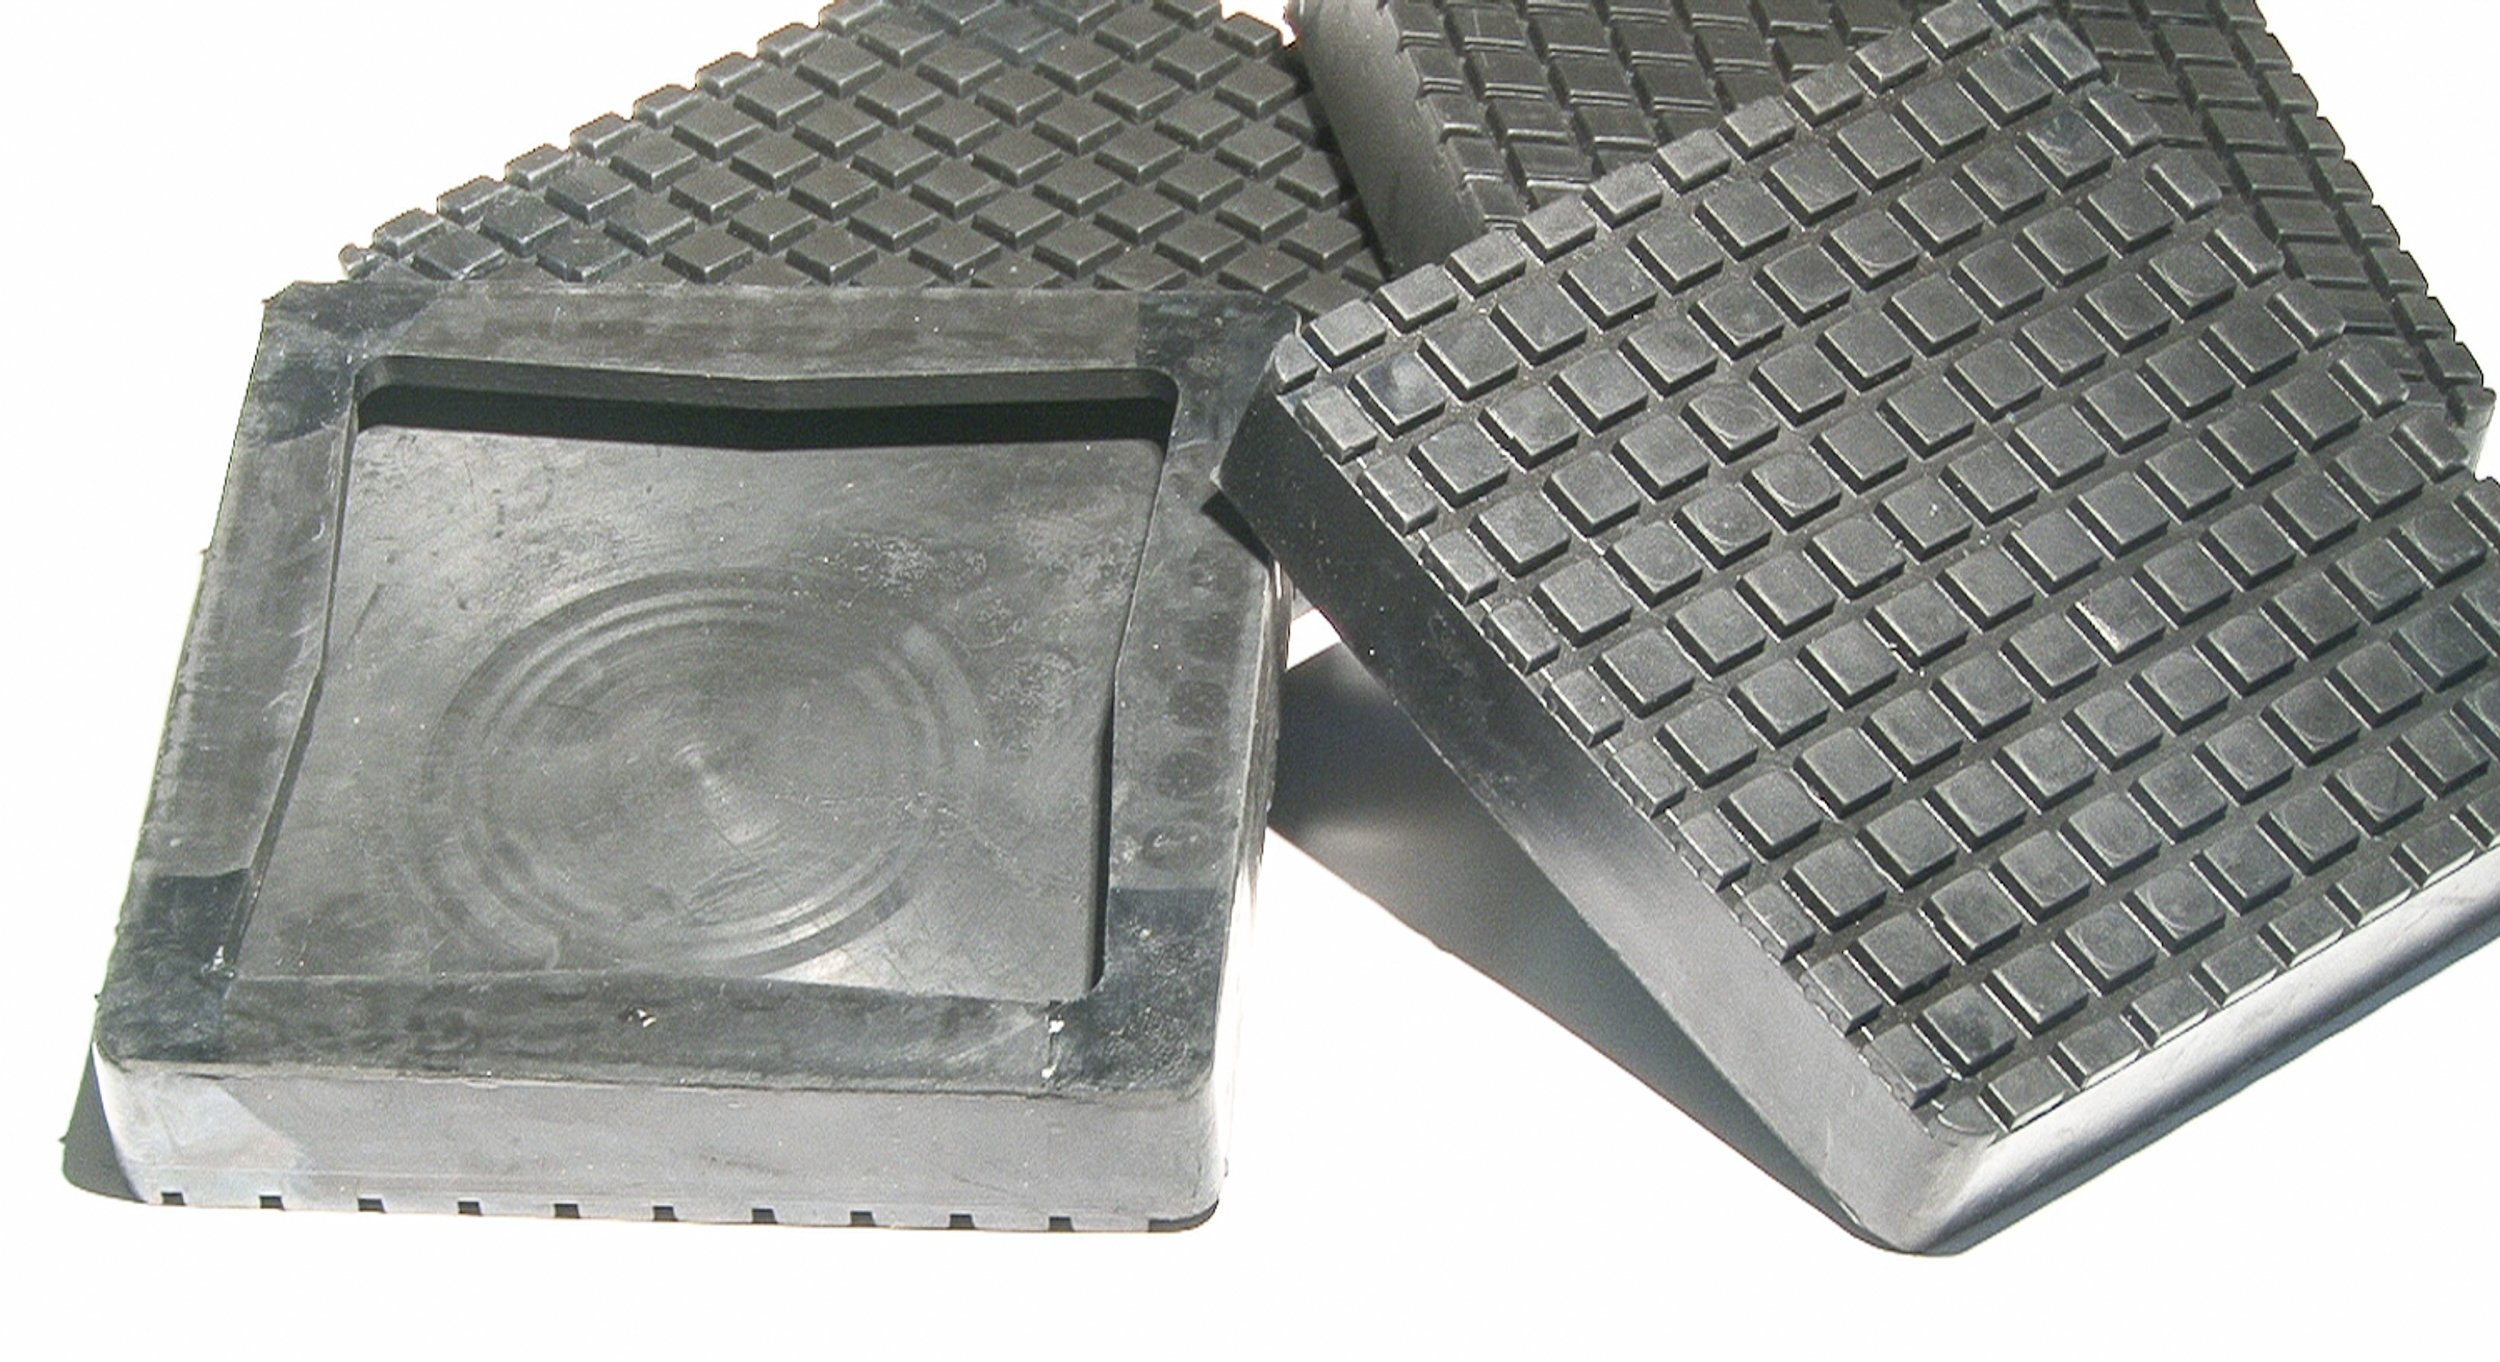 Auto Lift Parts - BendPak or Danmar Square Rubber Replacement arm Pads (Slip on Style) for 2 Post Lifts - Set of 4